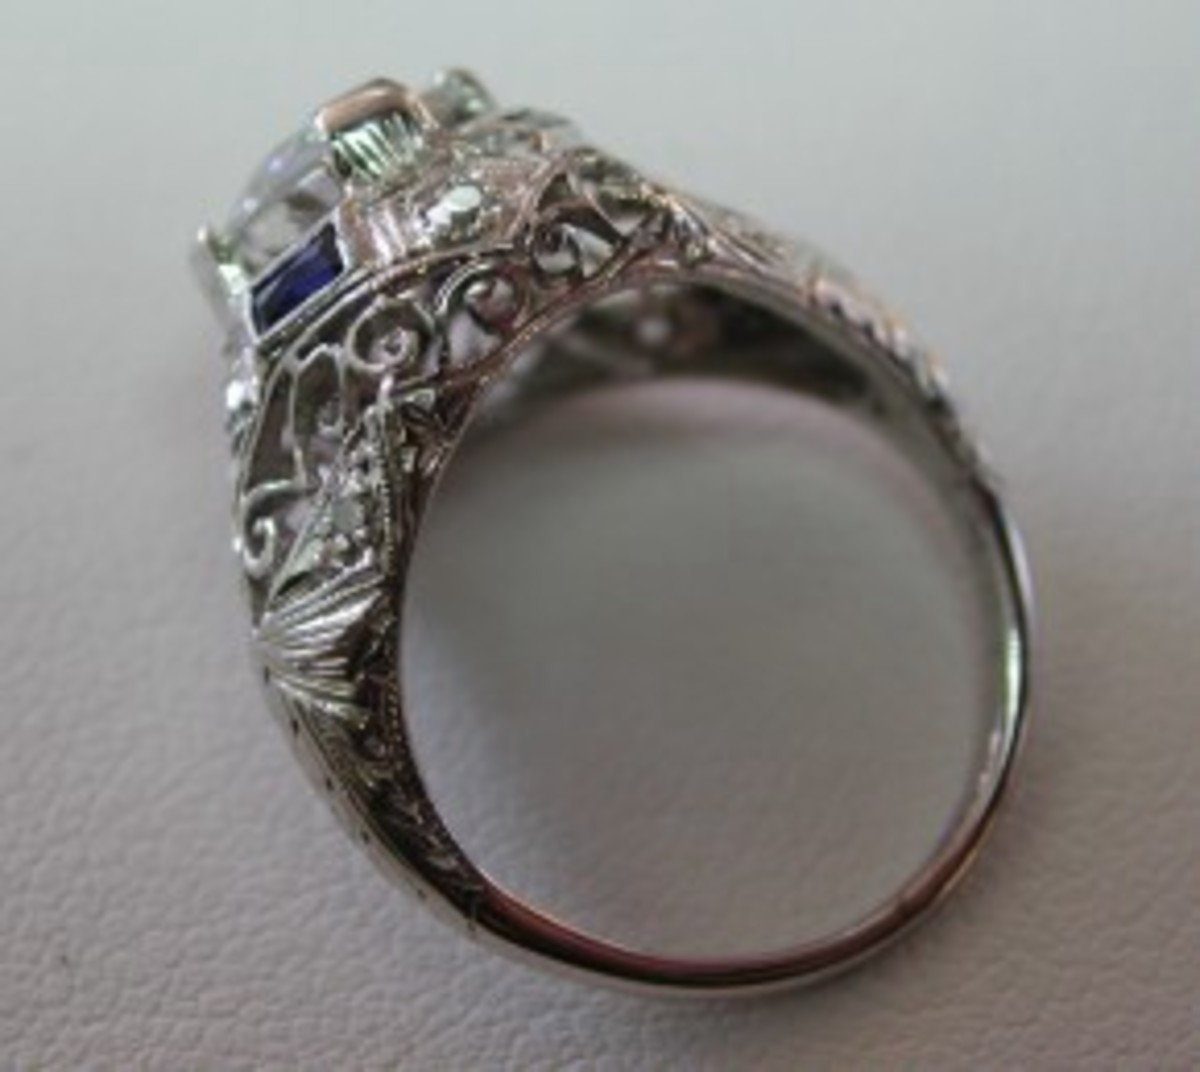 A genuine antique platinum ring with filigree, calibrated-cut sapphires and accent diamonds.